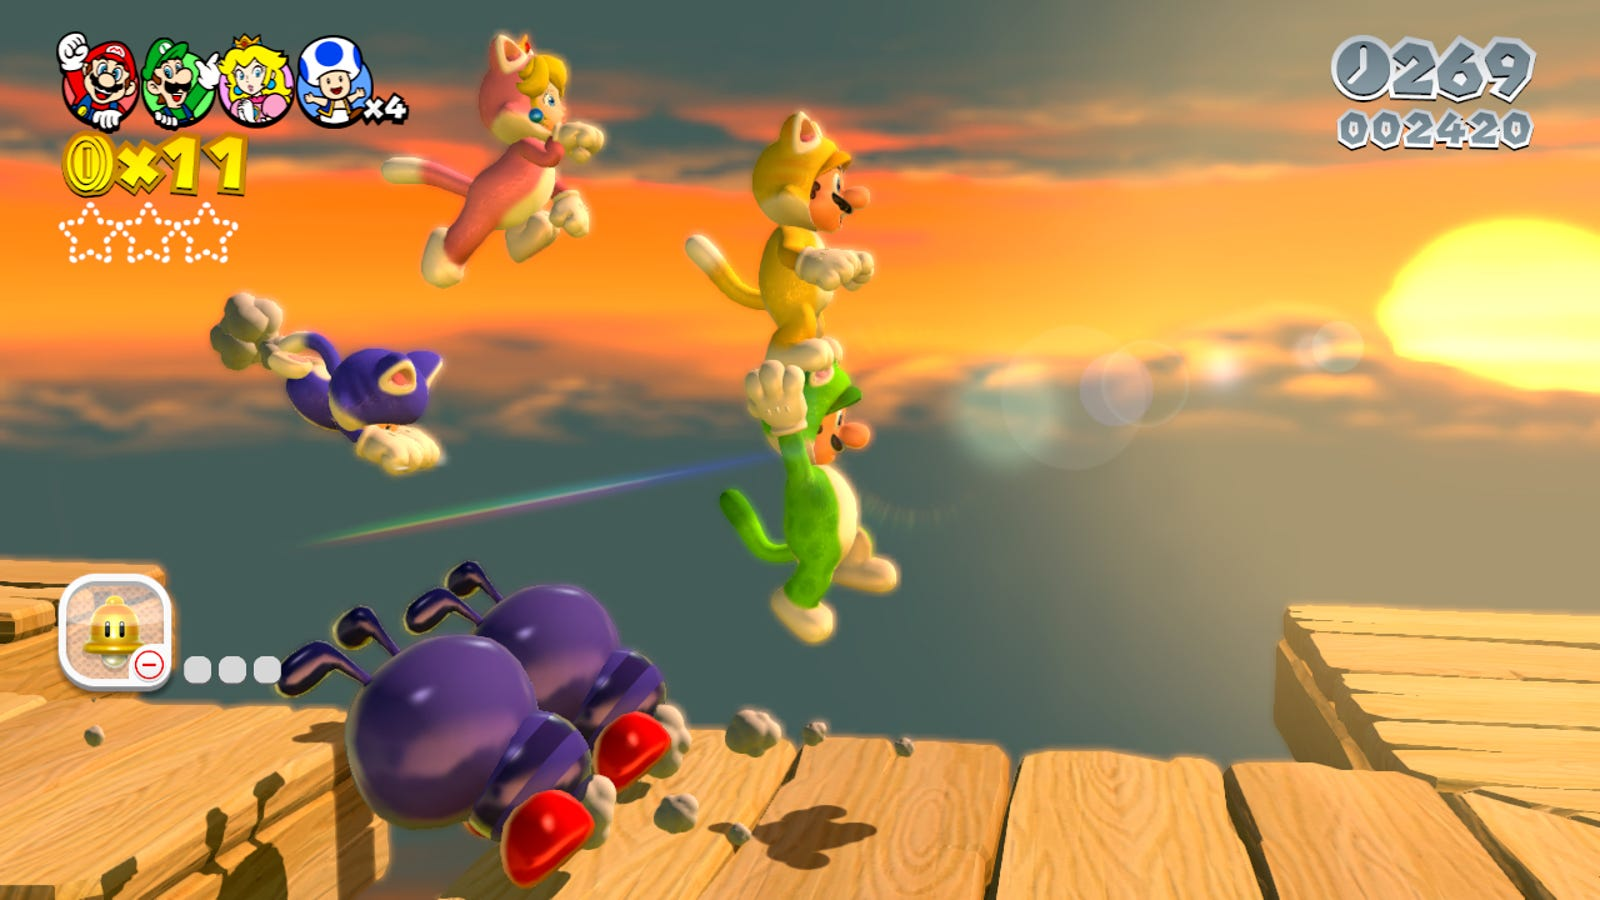 """New Super Mario Bros. U and Super Mario 3D World Nintendo likes to look back on Zelda games, but it tends to look forward with Mario. Bringing back one of these games would strike me as less of a """"the beloved classic returns"""" situation and more of a """"here's an old game"""" situation—especially after the transcendent Mario Odyssey. Still could happen, although both games have touchscreen controls that would need to be sliced out or redesigned."""